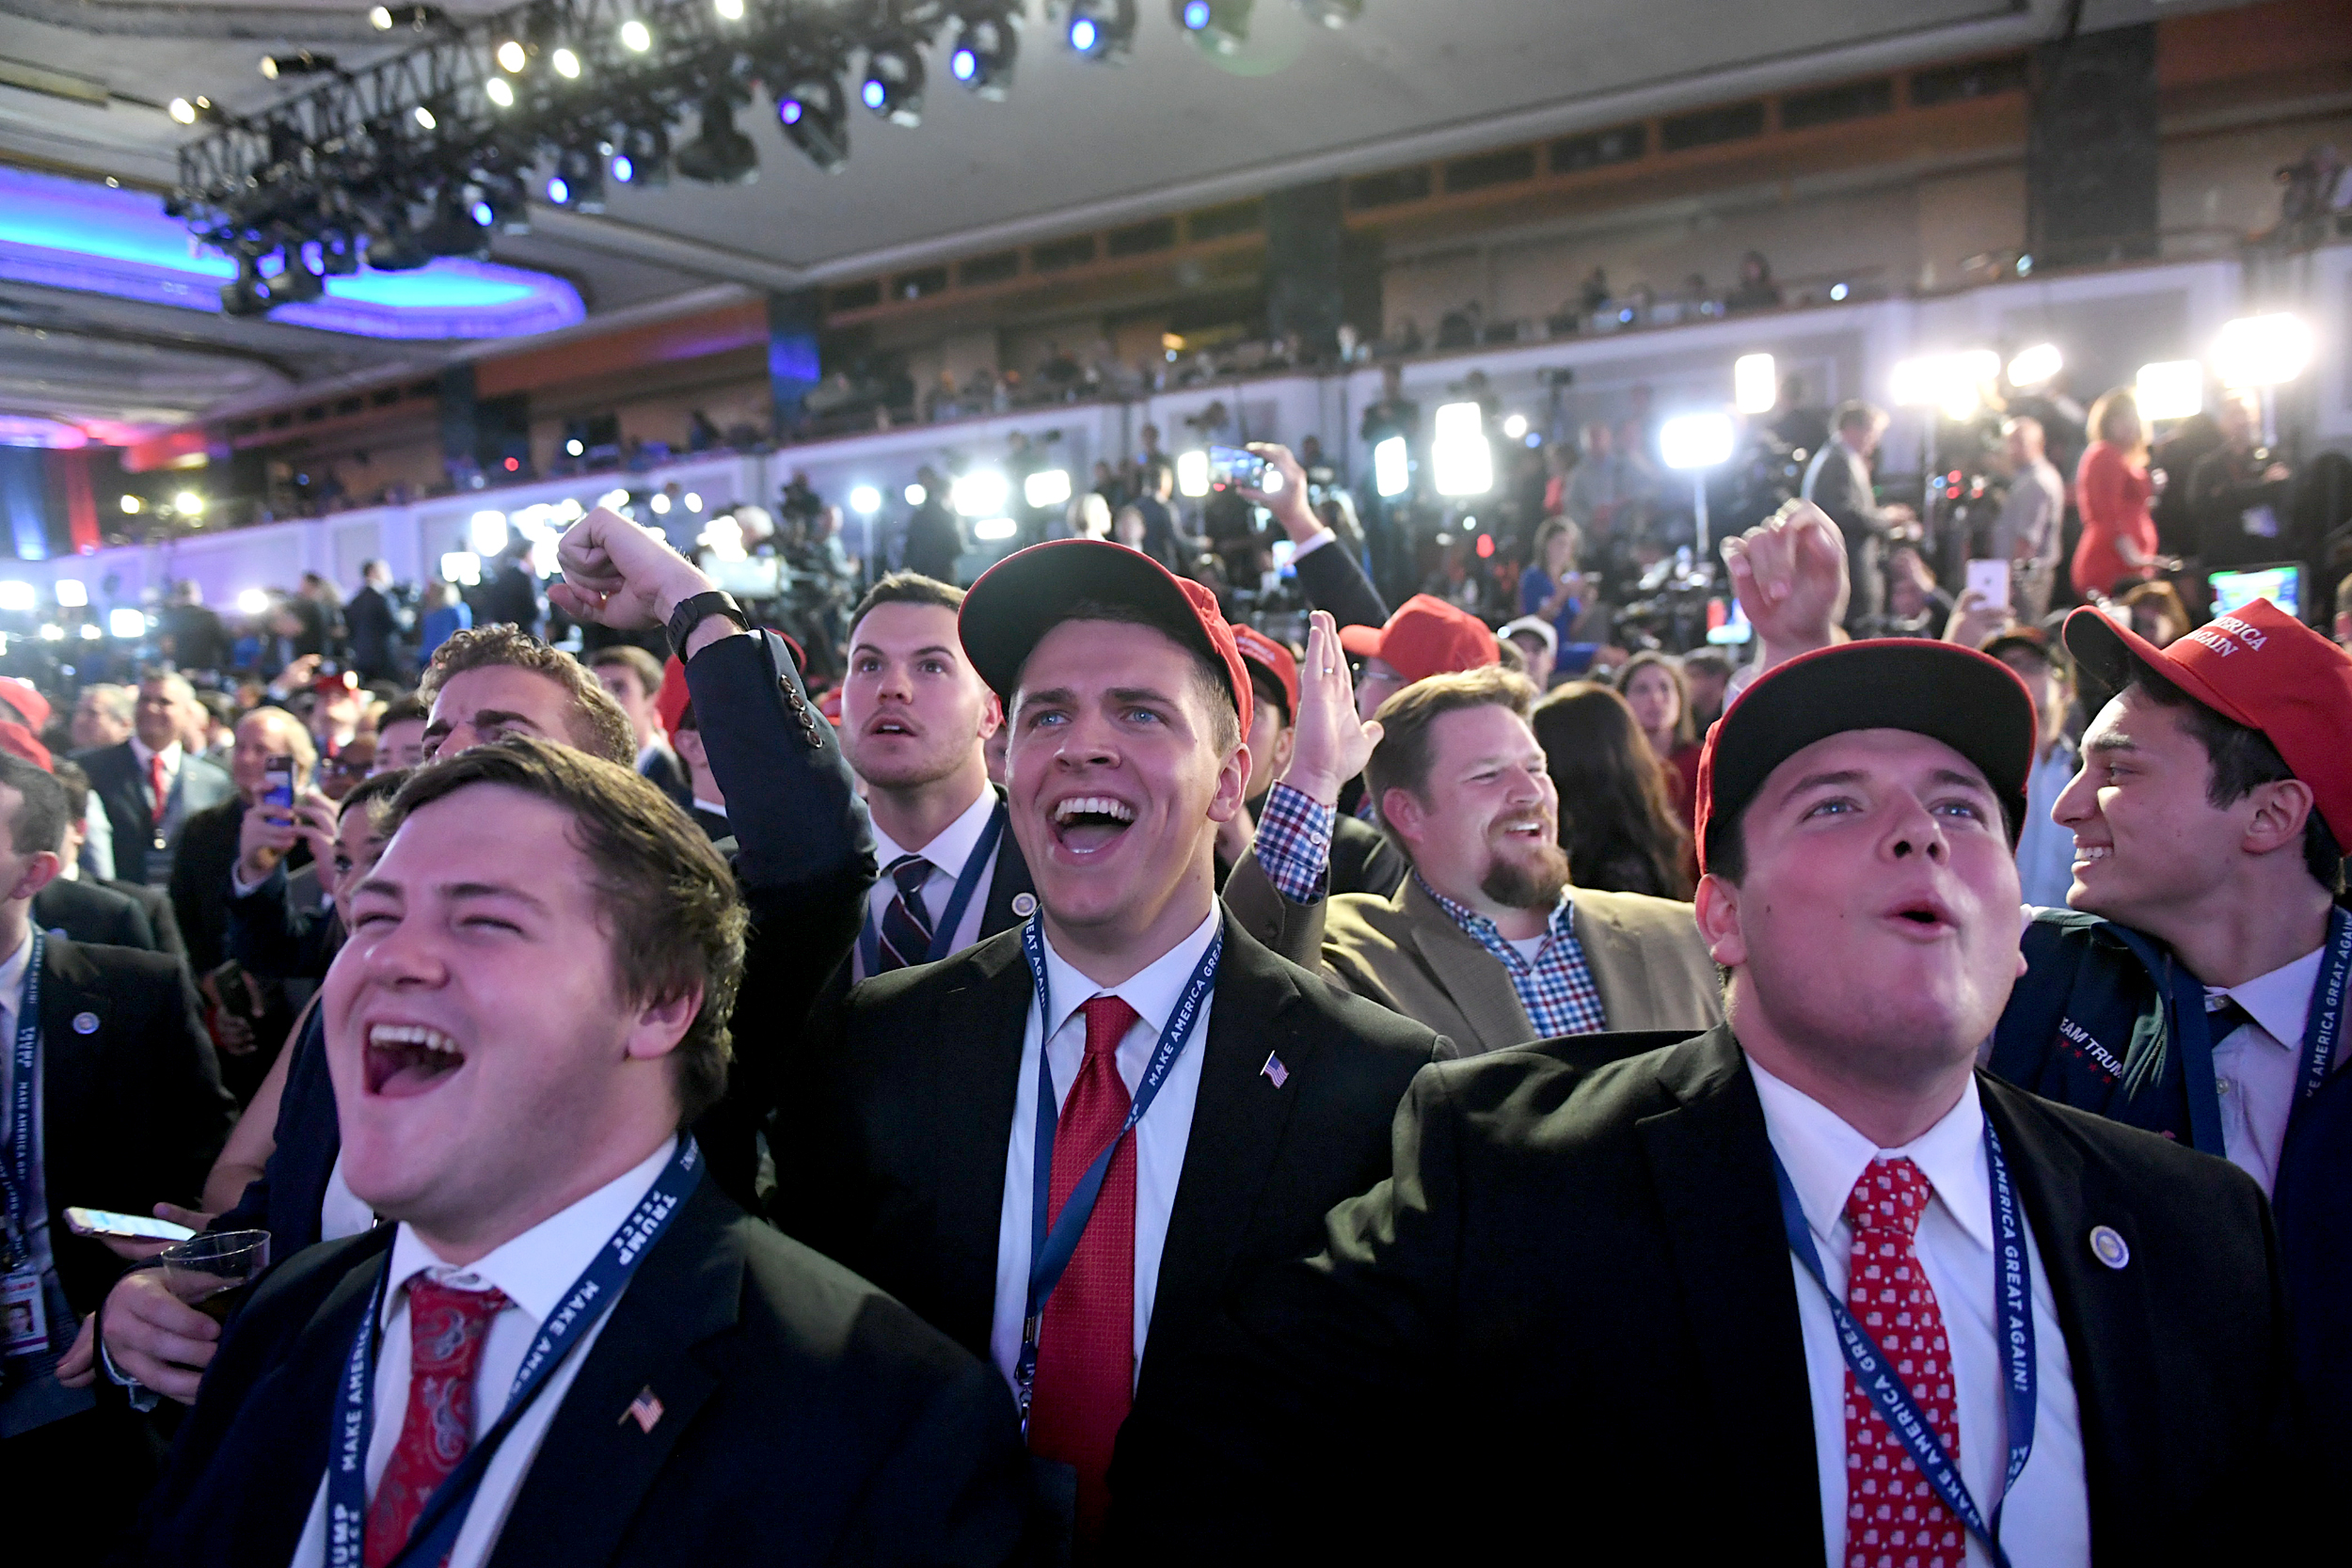 The GOP needs to start acting grown-up to attract millennial voters